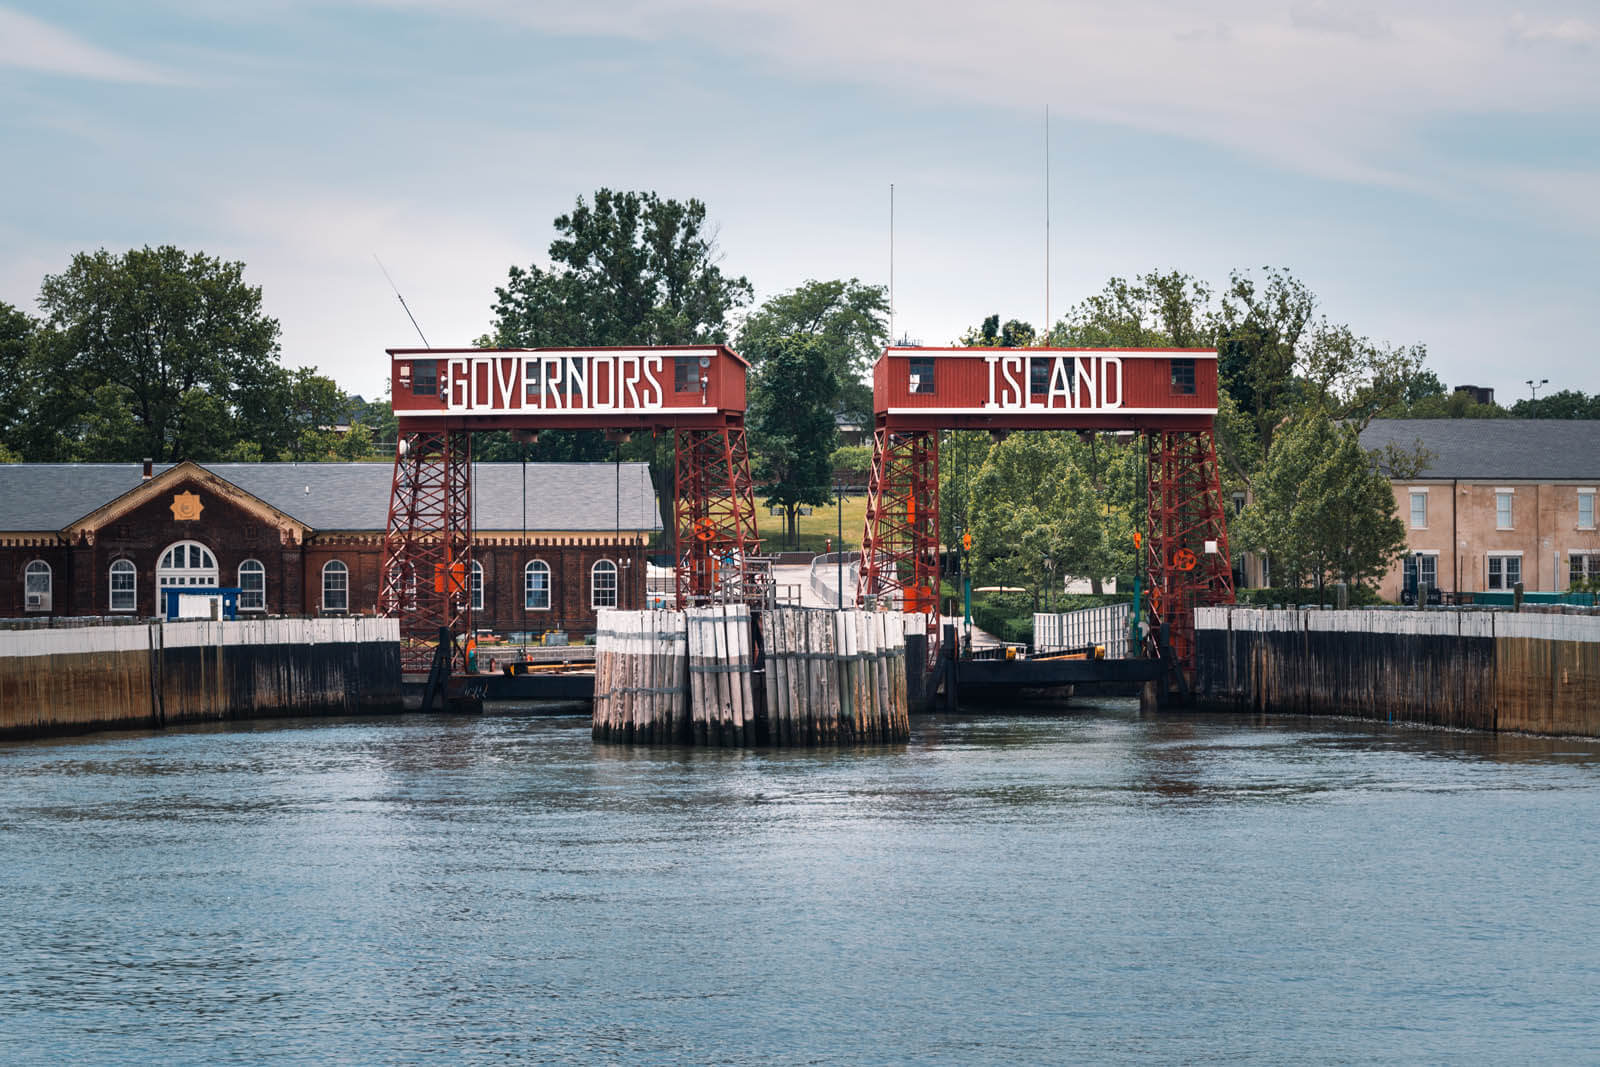 ferry entrance to Governors Island in NYC